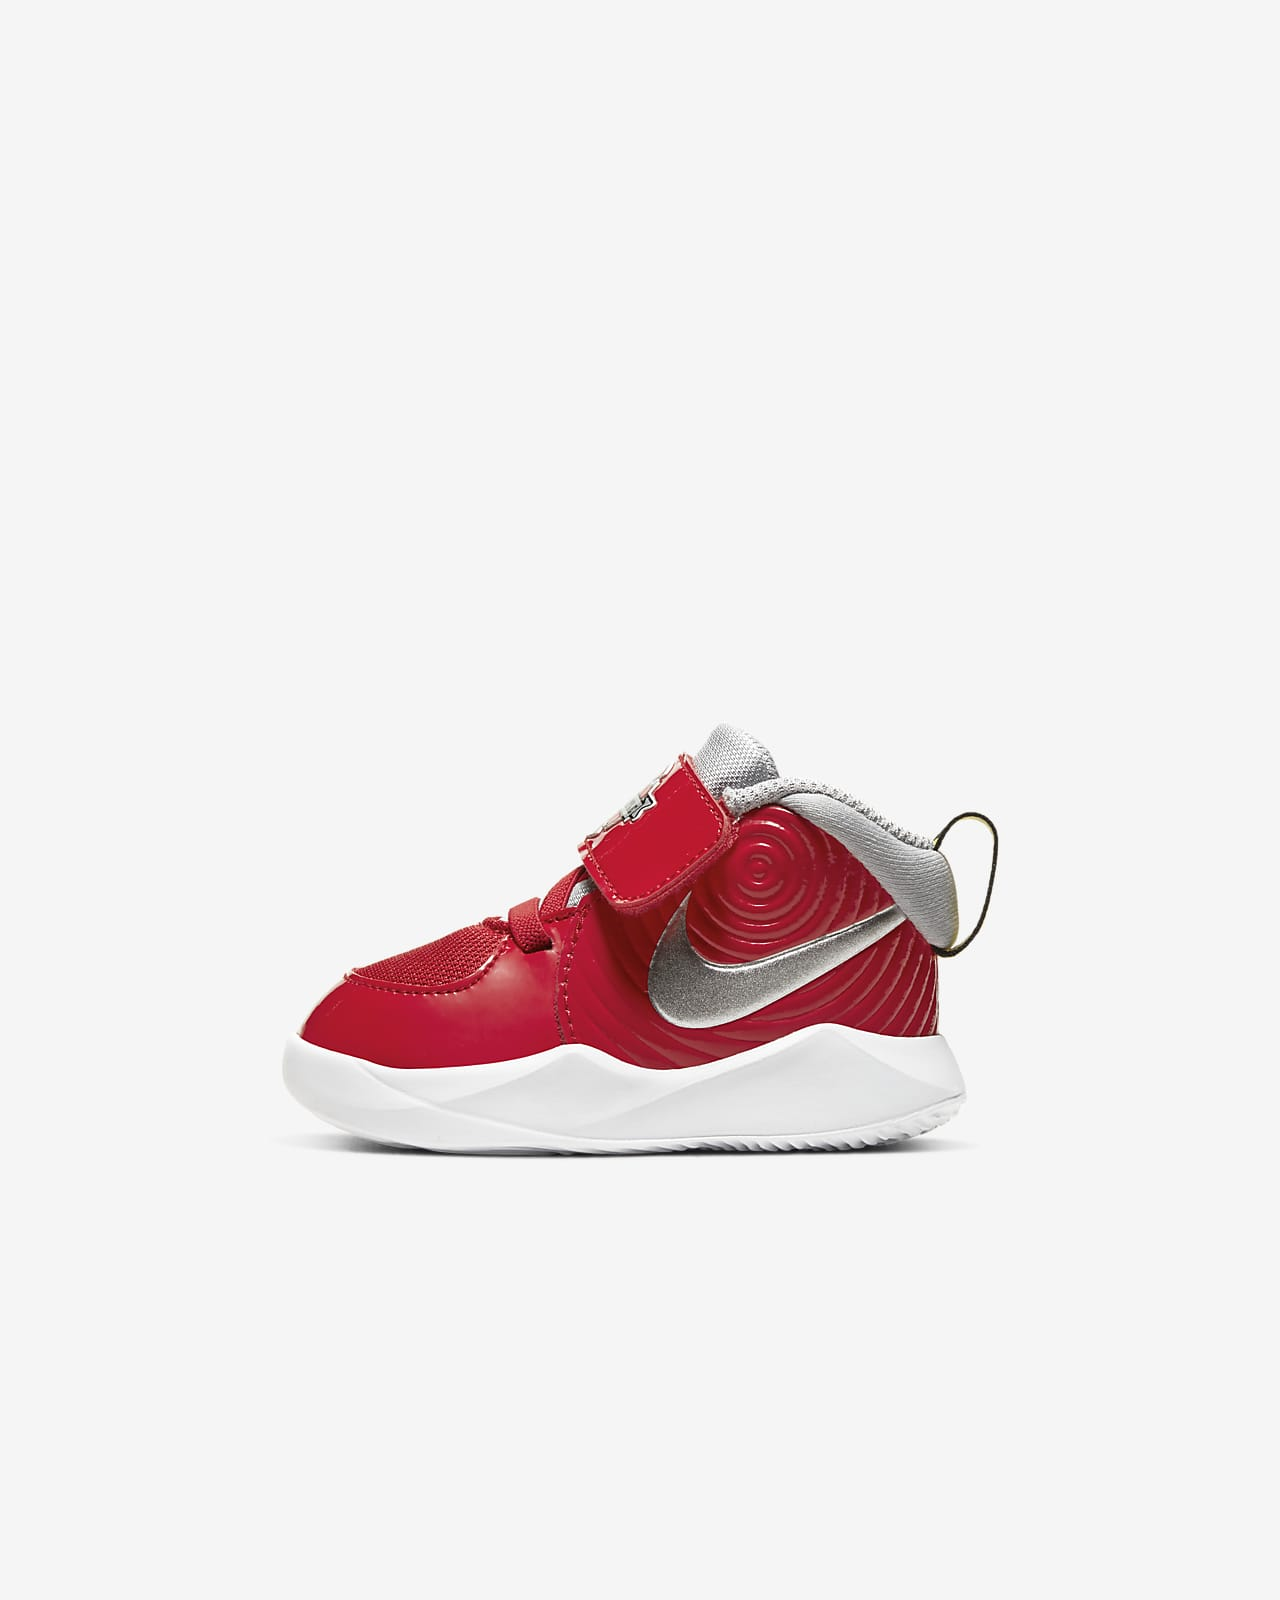 Nike Team Hustle D 9 Auto Baby/Toddler